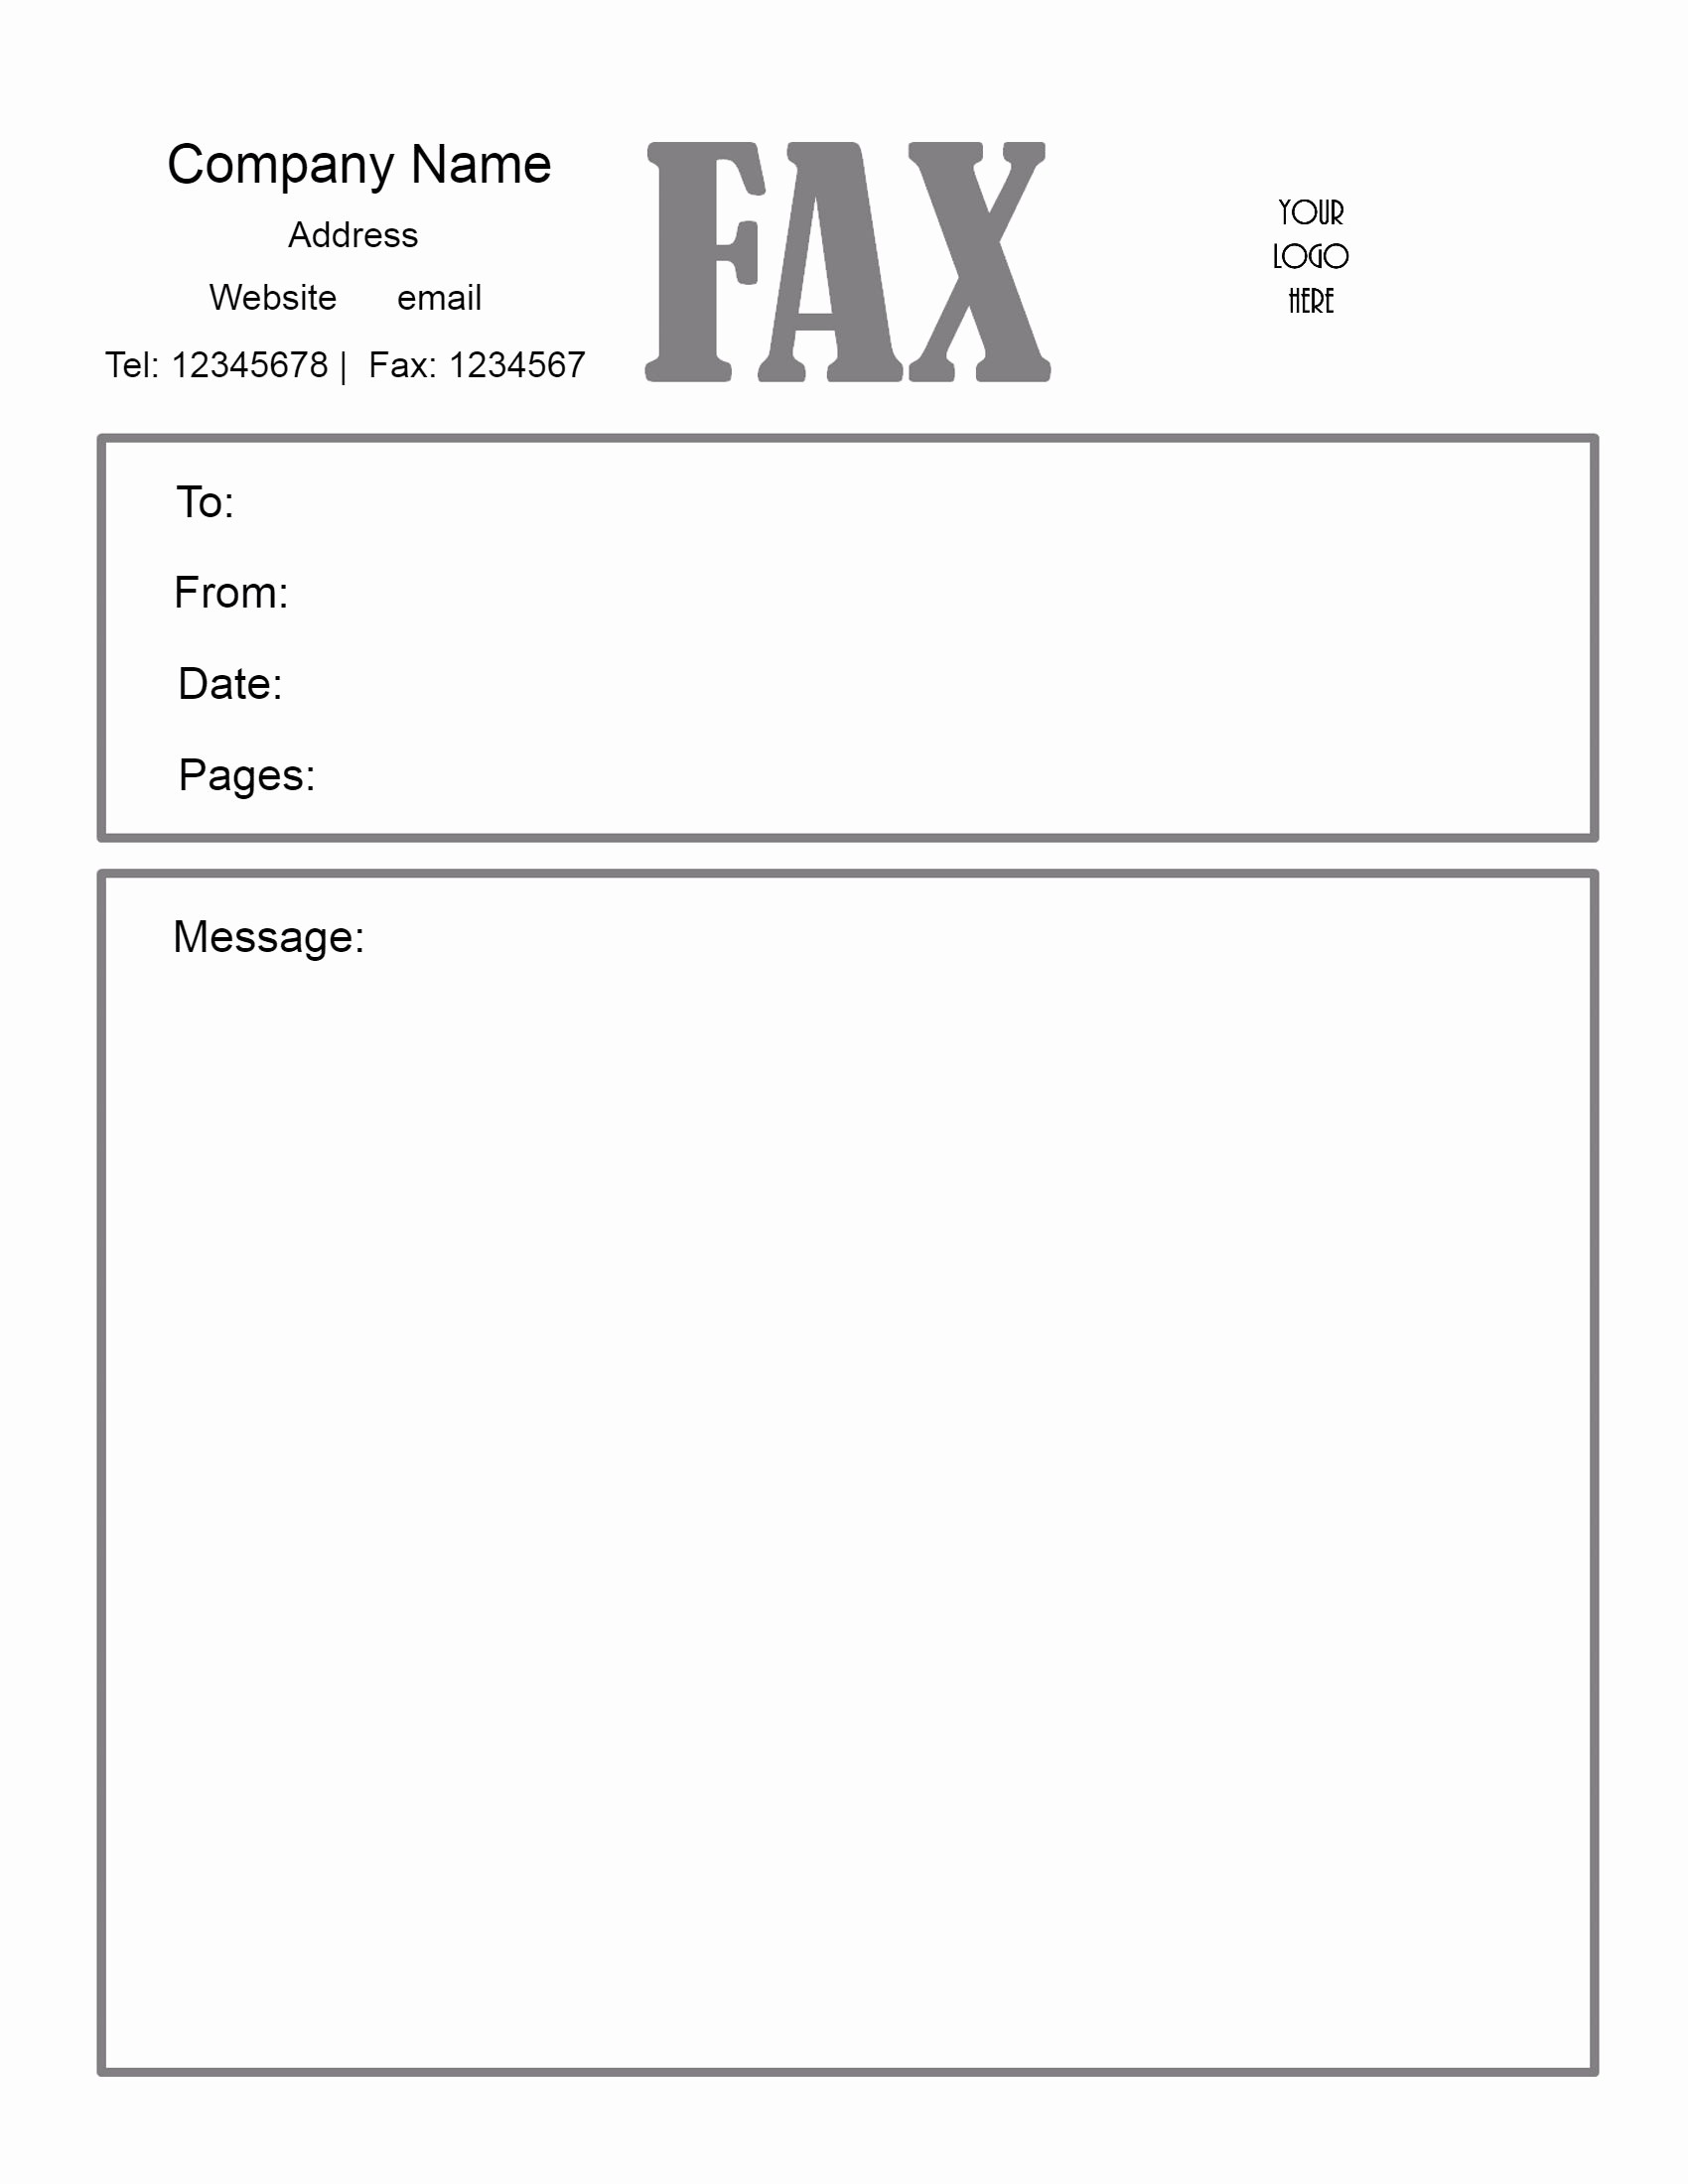 Free Fax Cover Letter Template Luxury Free Fax Cover Letter Template